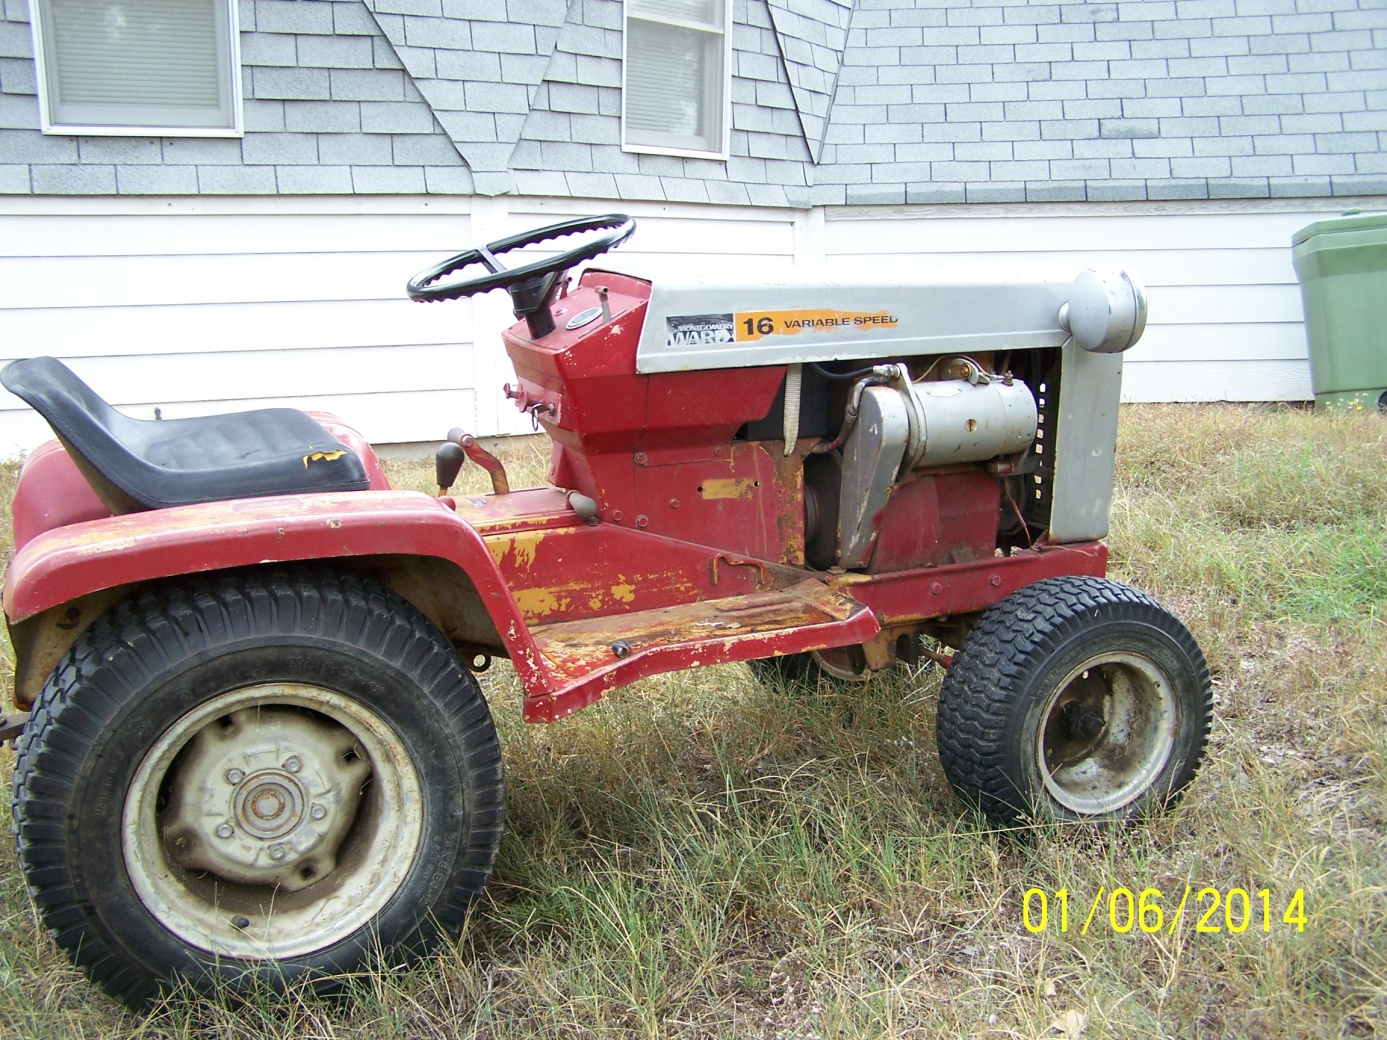 1973 Montgomery ward Gilson 16 hp variable speed   My Tractor ForumMy Tractor Forum